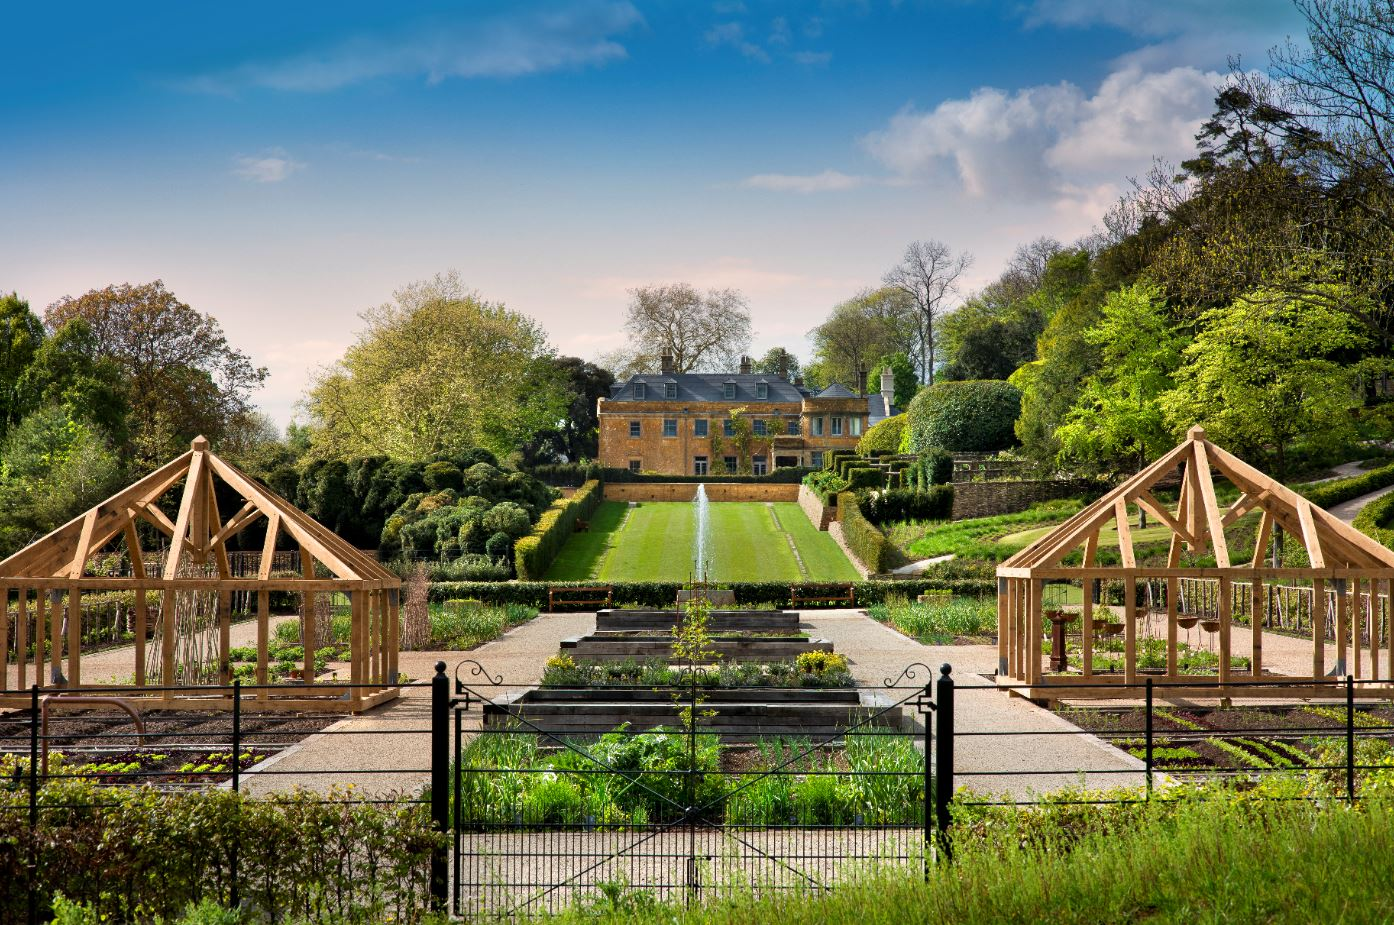 New Hotel Opening The Newt In Somerset Four Magazine